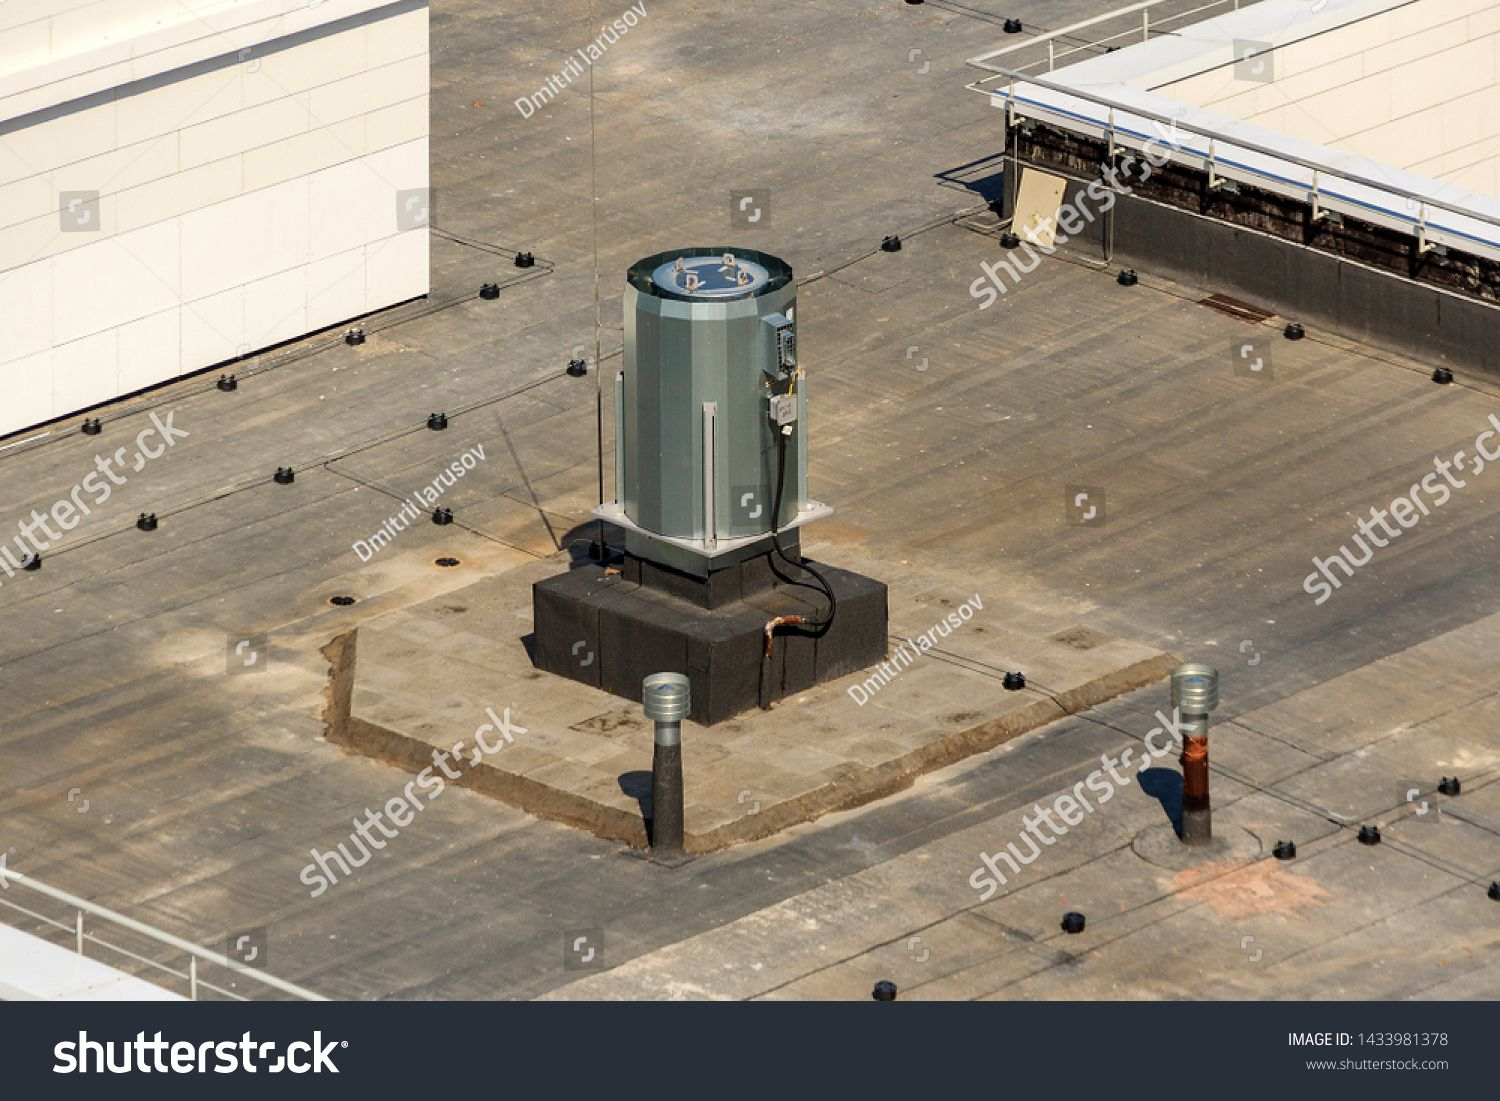 Ventilation, air conditioning system on roof of modern